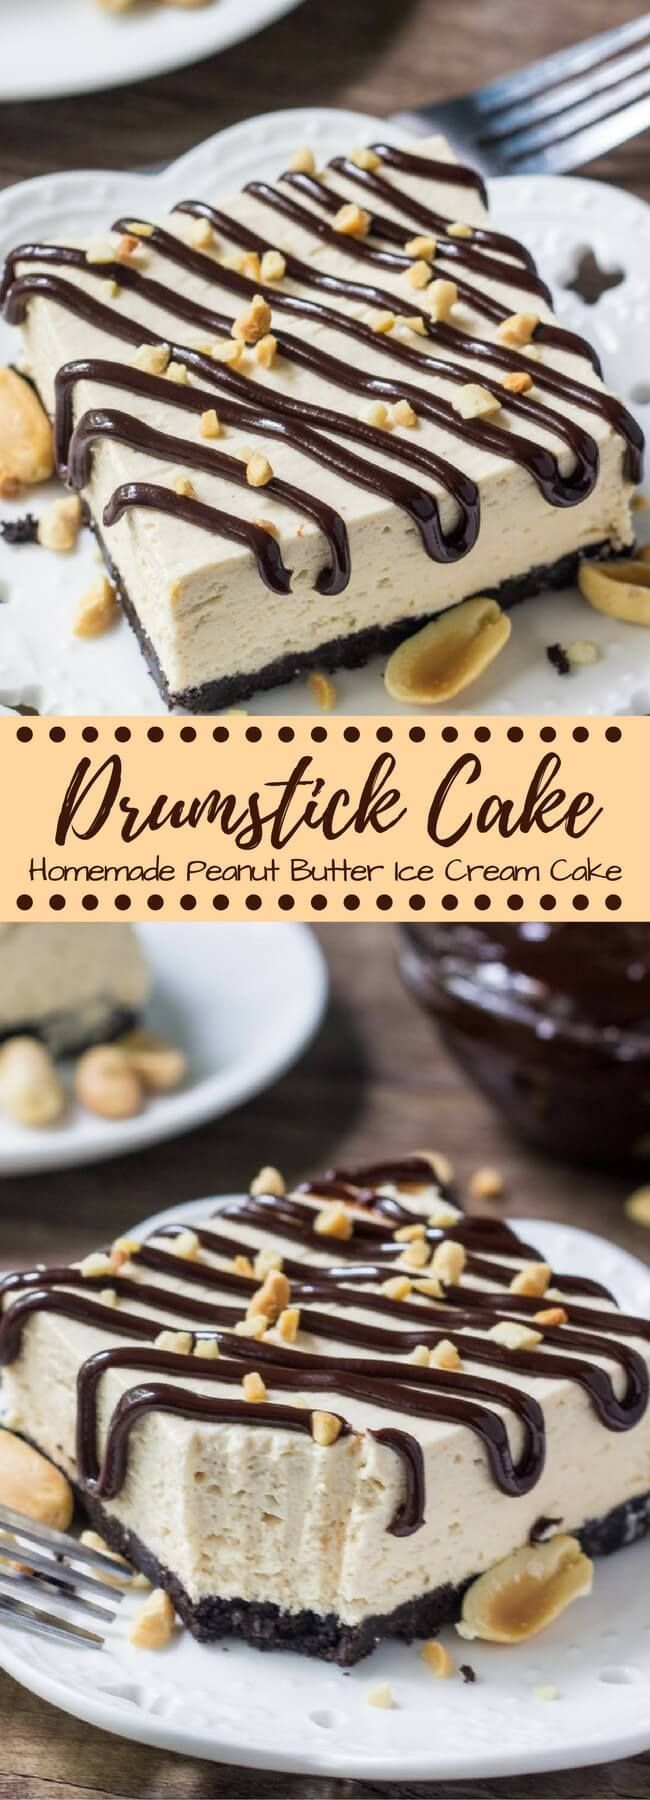 Drumstick cake is an easy, homemade, no bake peanut butter ice cream cake with all the flavor of drumstick ice cream cones. With an Oreo crust, fudge sauce & peanuts - if you love buster bars you definitely need to try this!